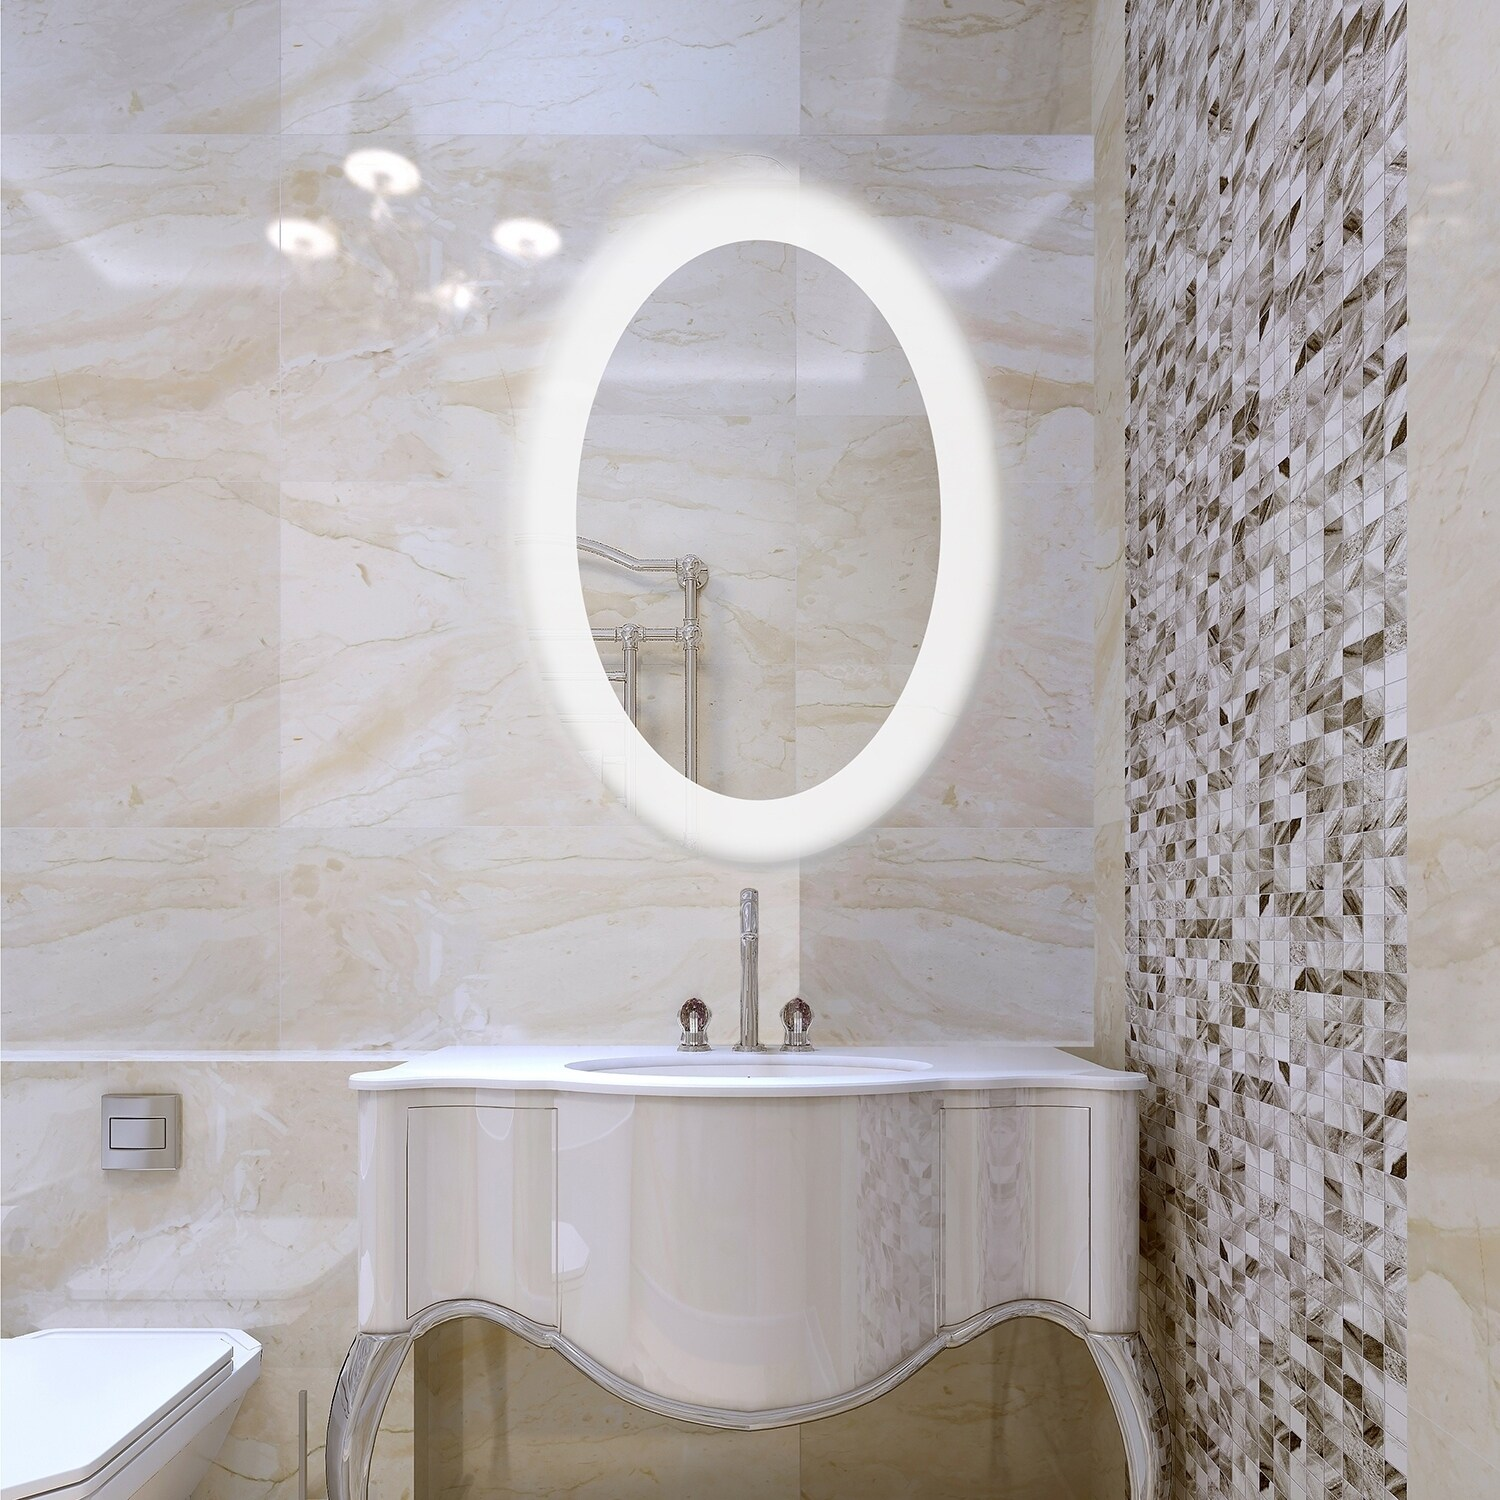 Dyconn Faucet Royal Wall-mounted Vanity Bathroom LED Backlit Mirror ...